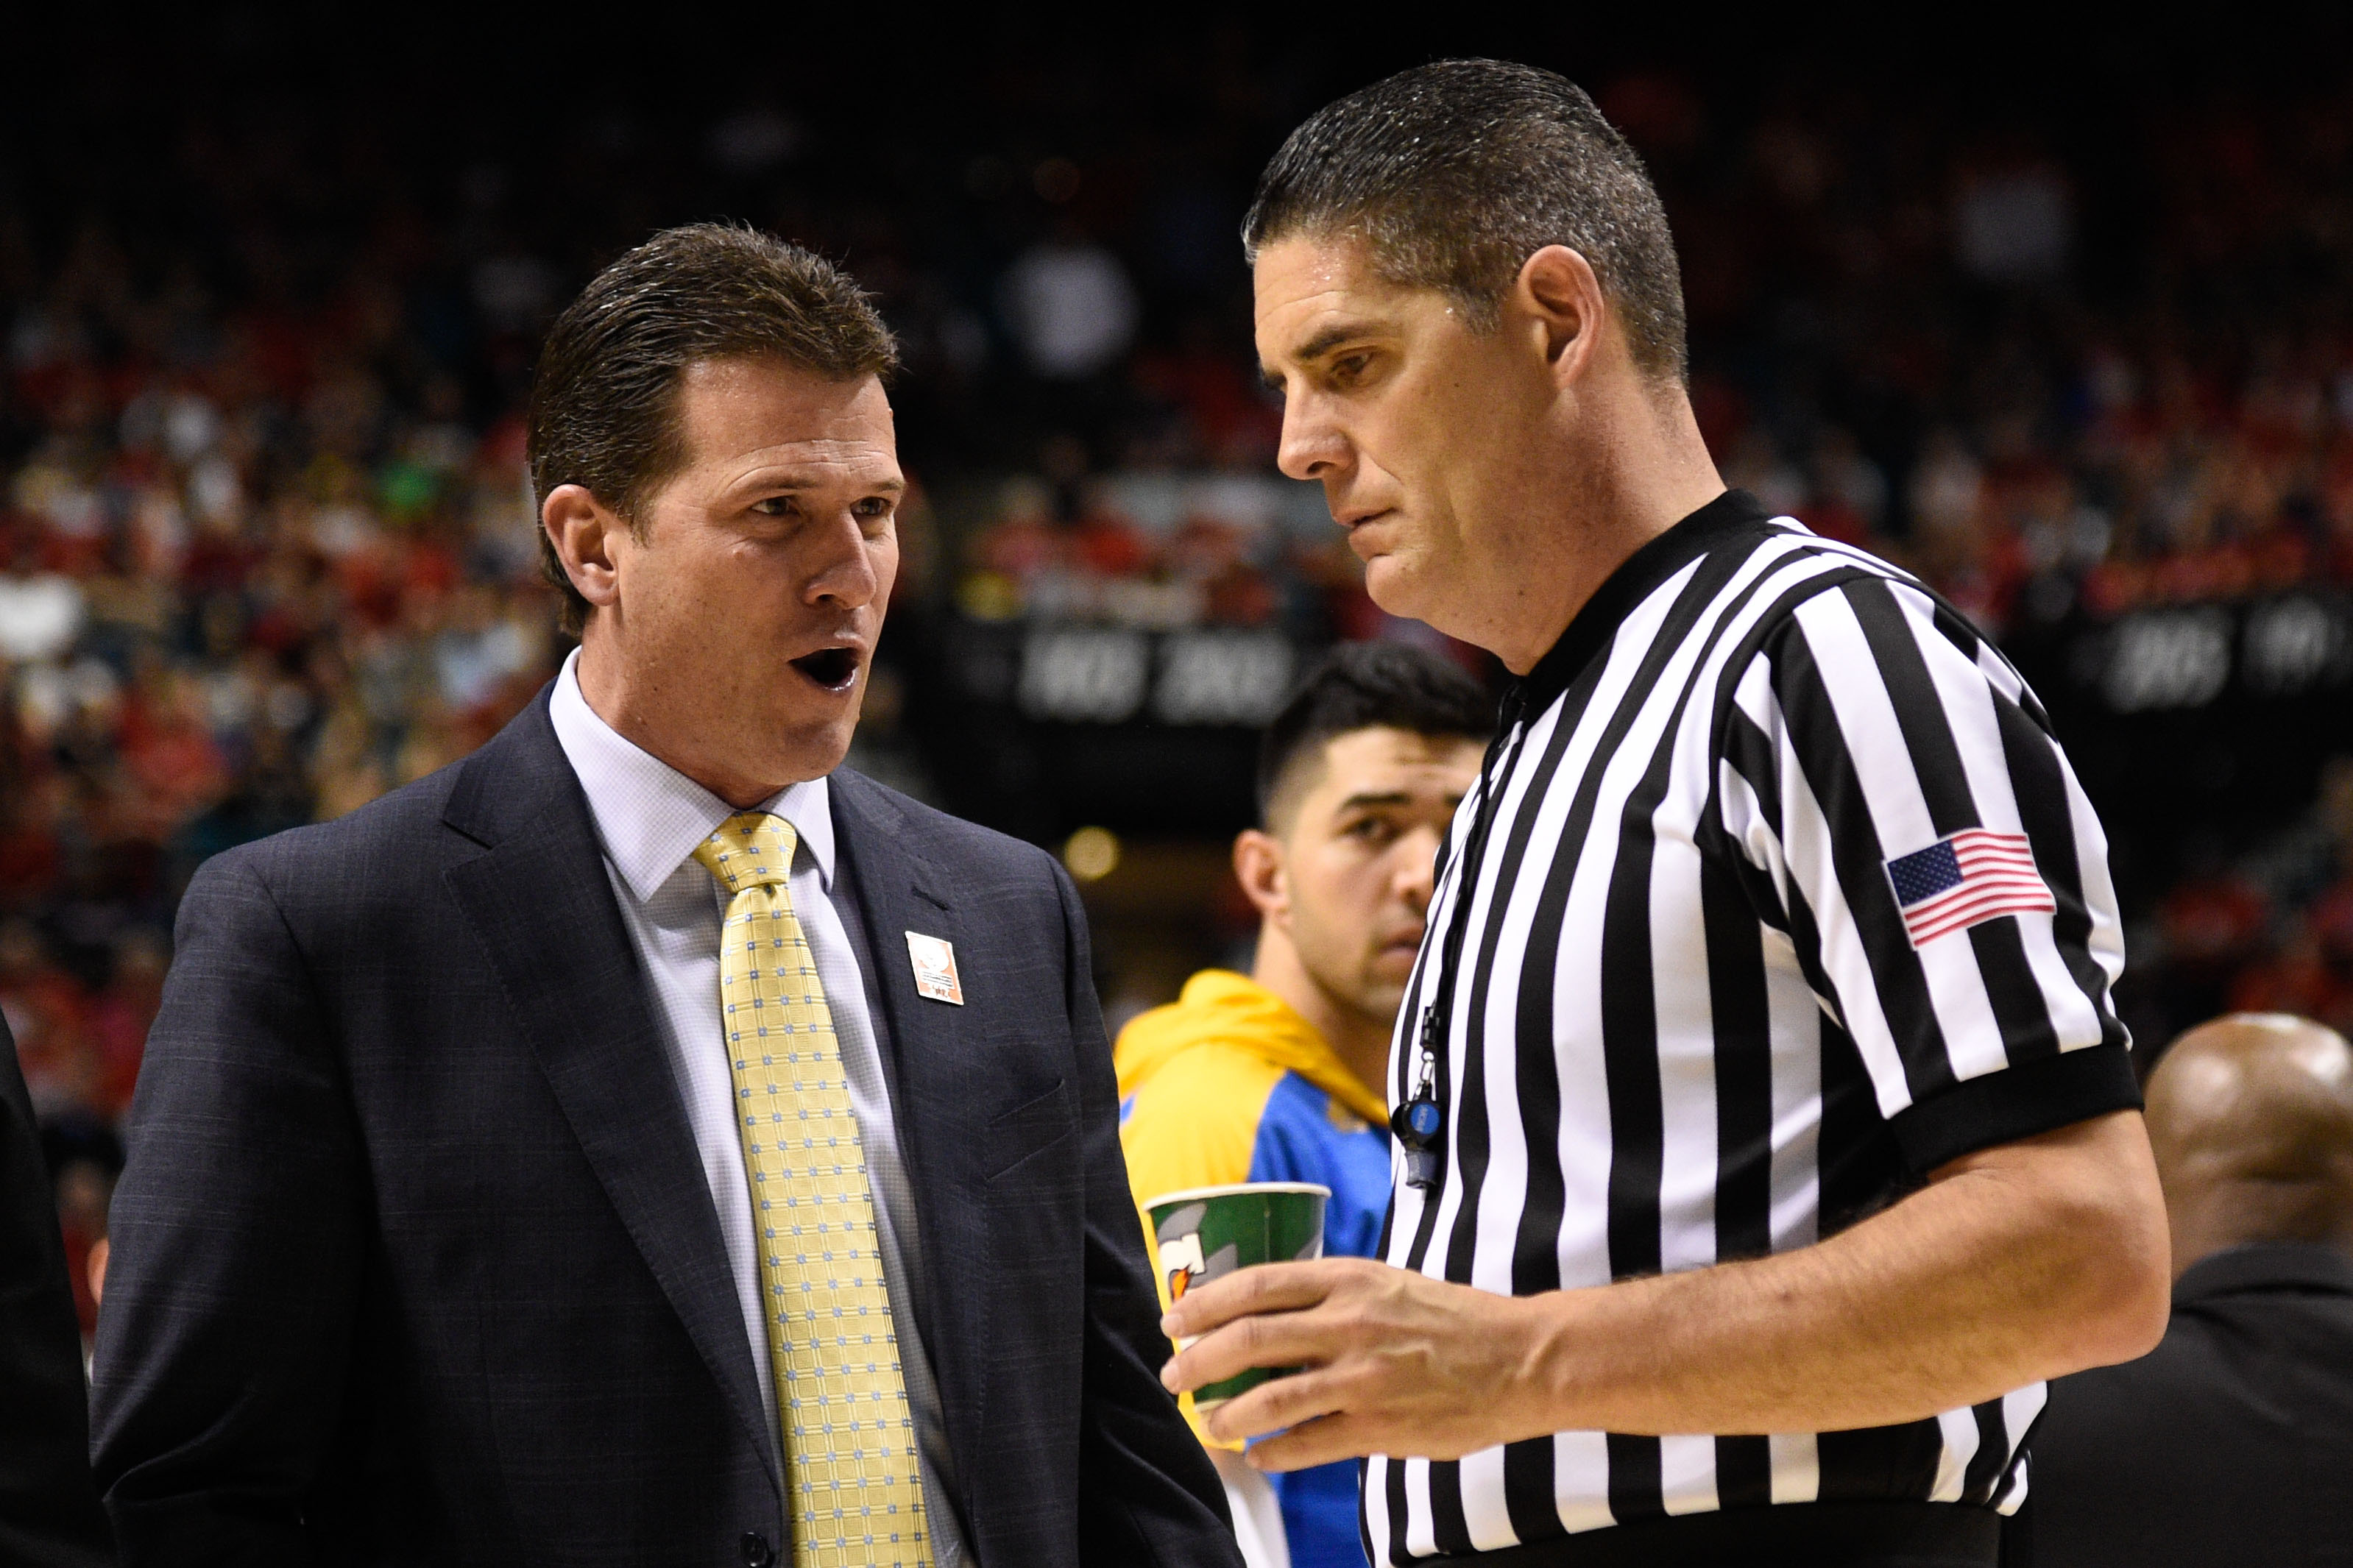 13-23 may be the big number for the game, but that is not why UCLA's chance to dance is in doubt